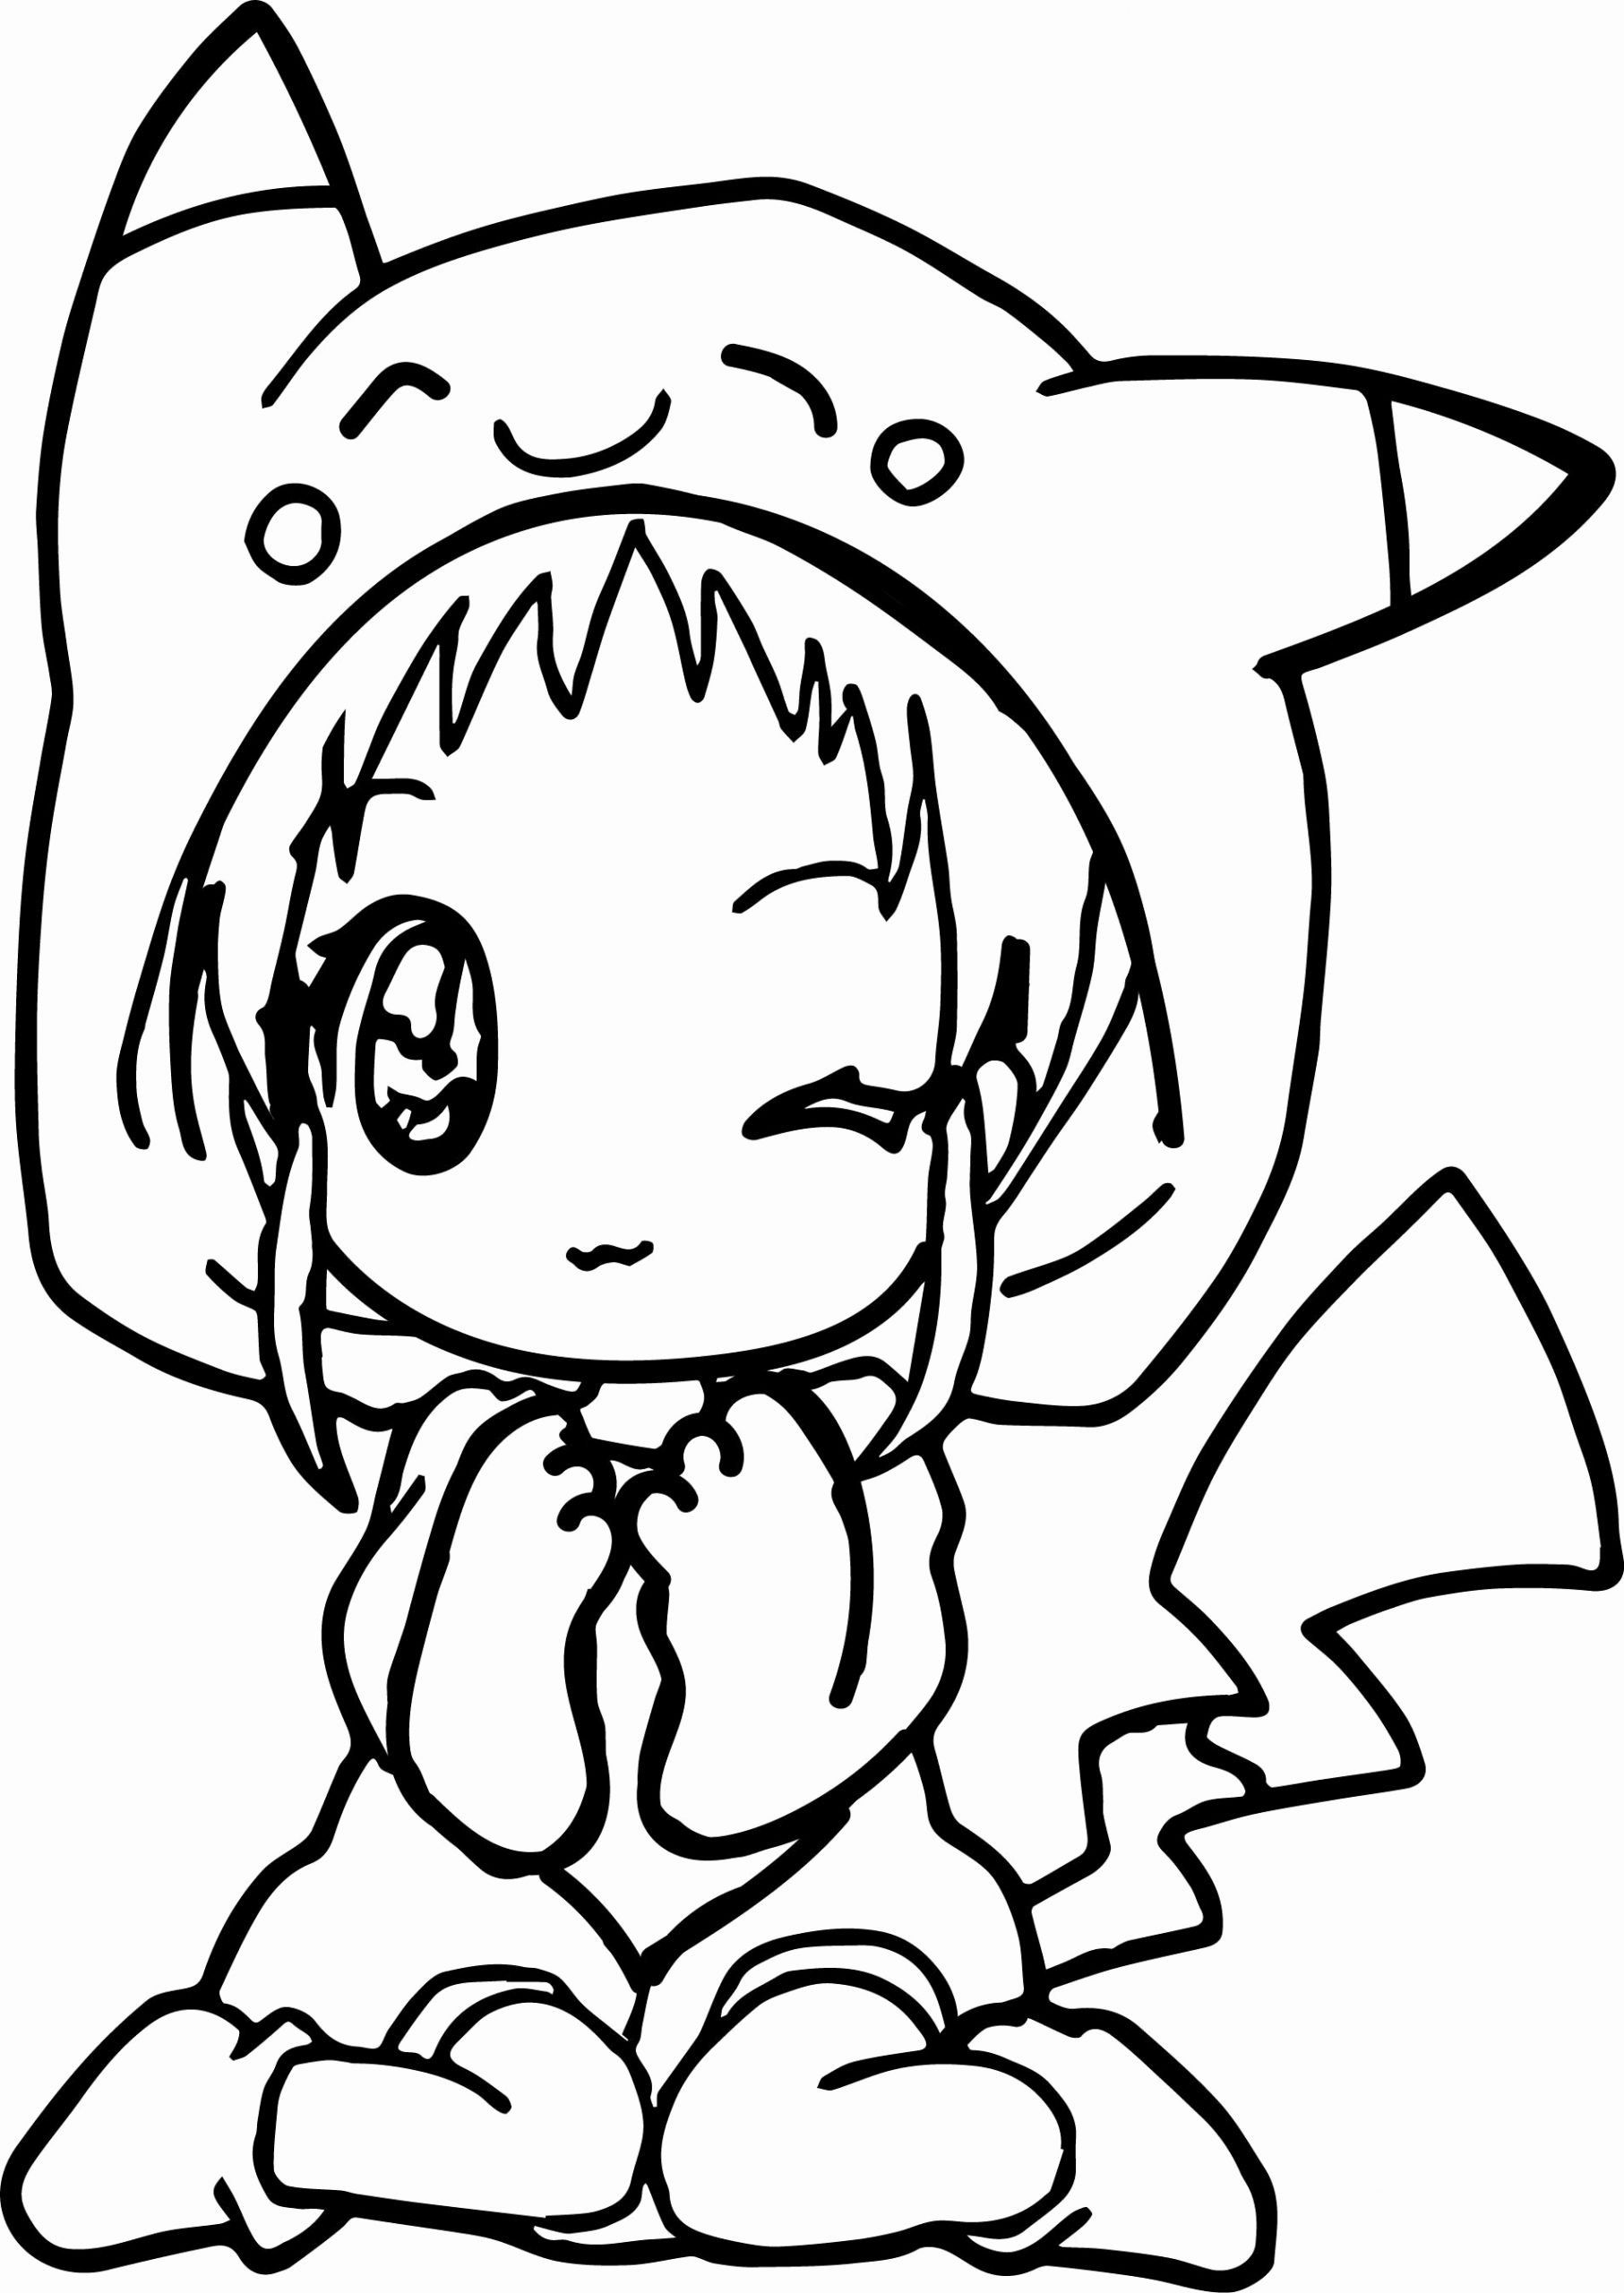 Cute Anime Cat Coloring Pages New Cute Coloring Pages Best Coloring Pages For Kids In 2020 Unicorn Coloring Pages Pikachu Coloring Page Cute Coloring Pages